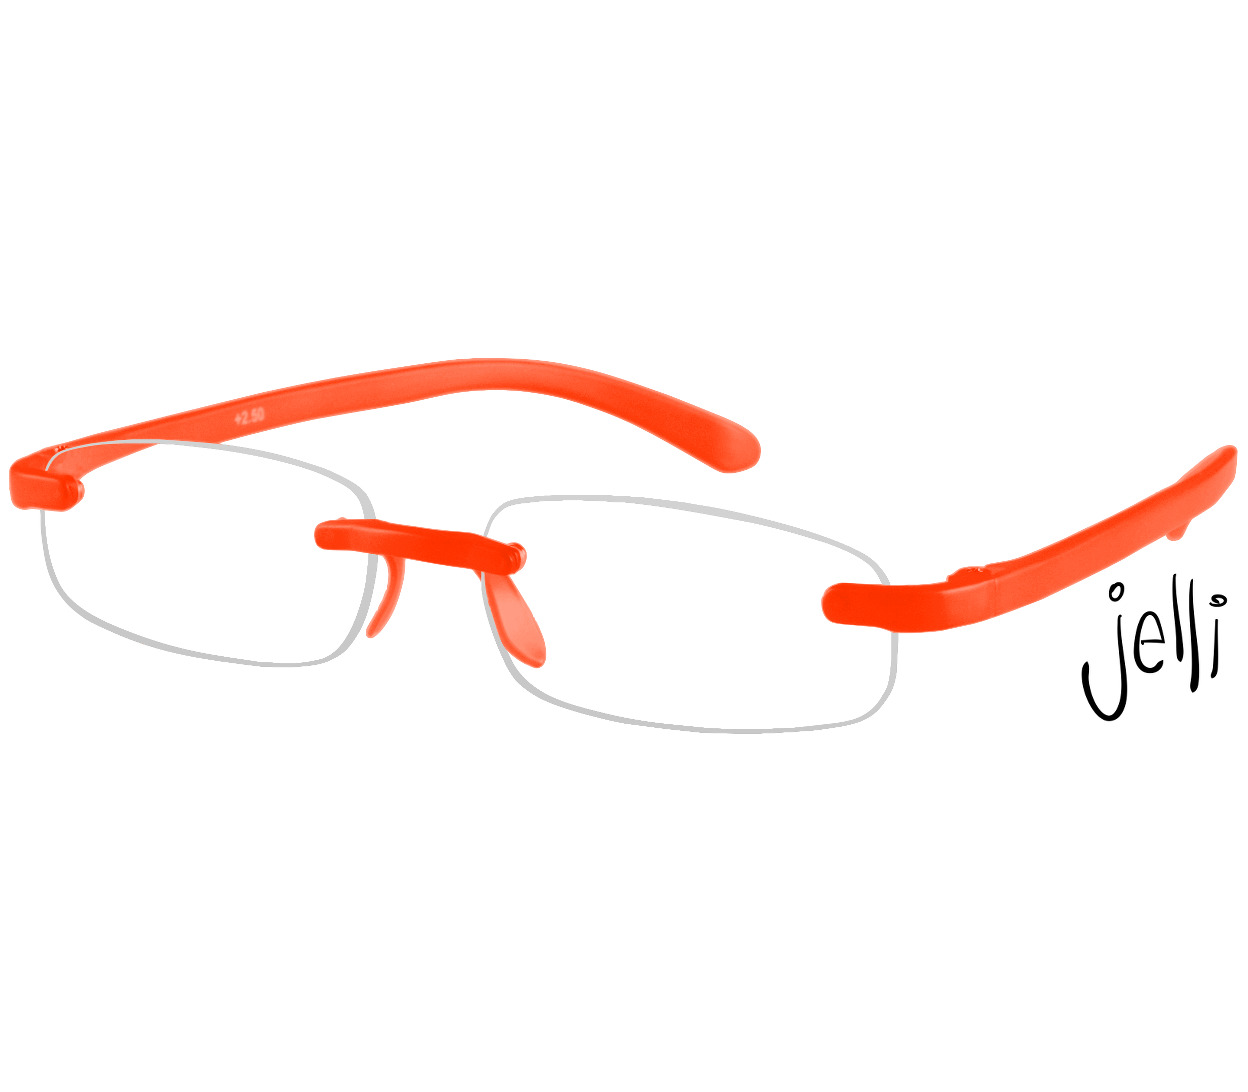 Main Image (Angle) - Jelli Neon (Orange) Rimless Reading Glasses